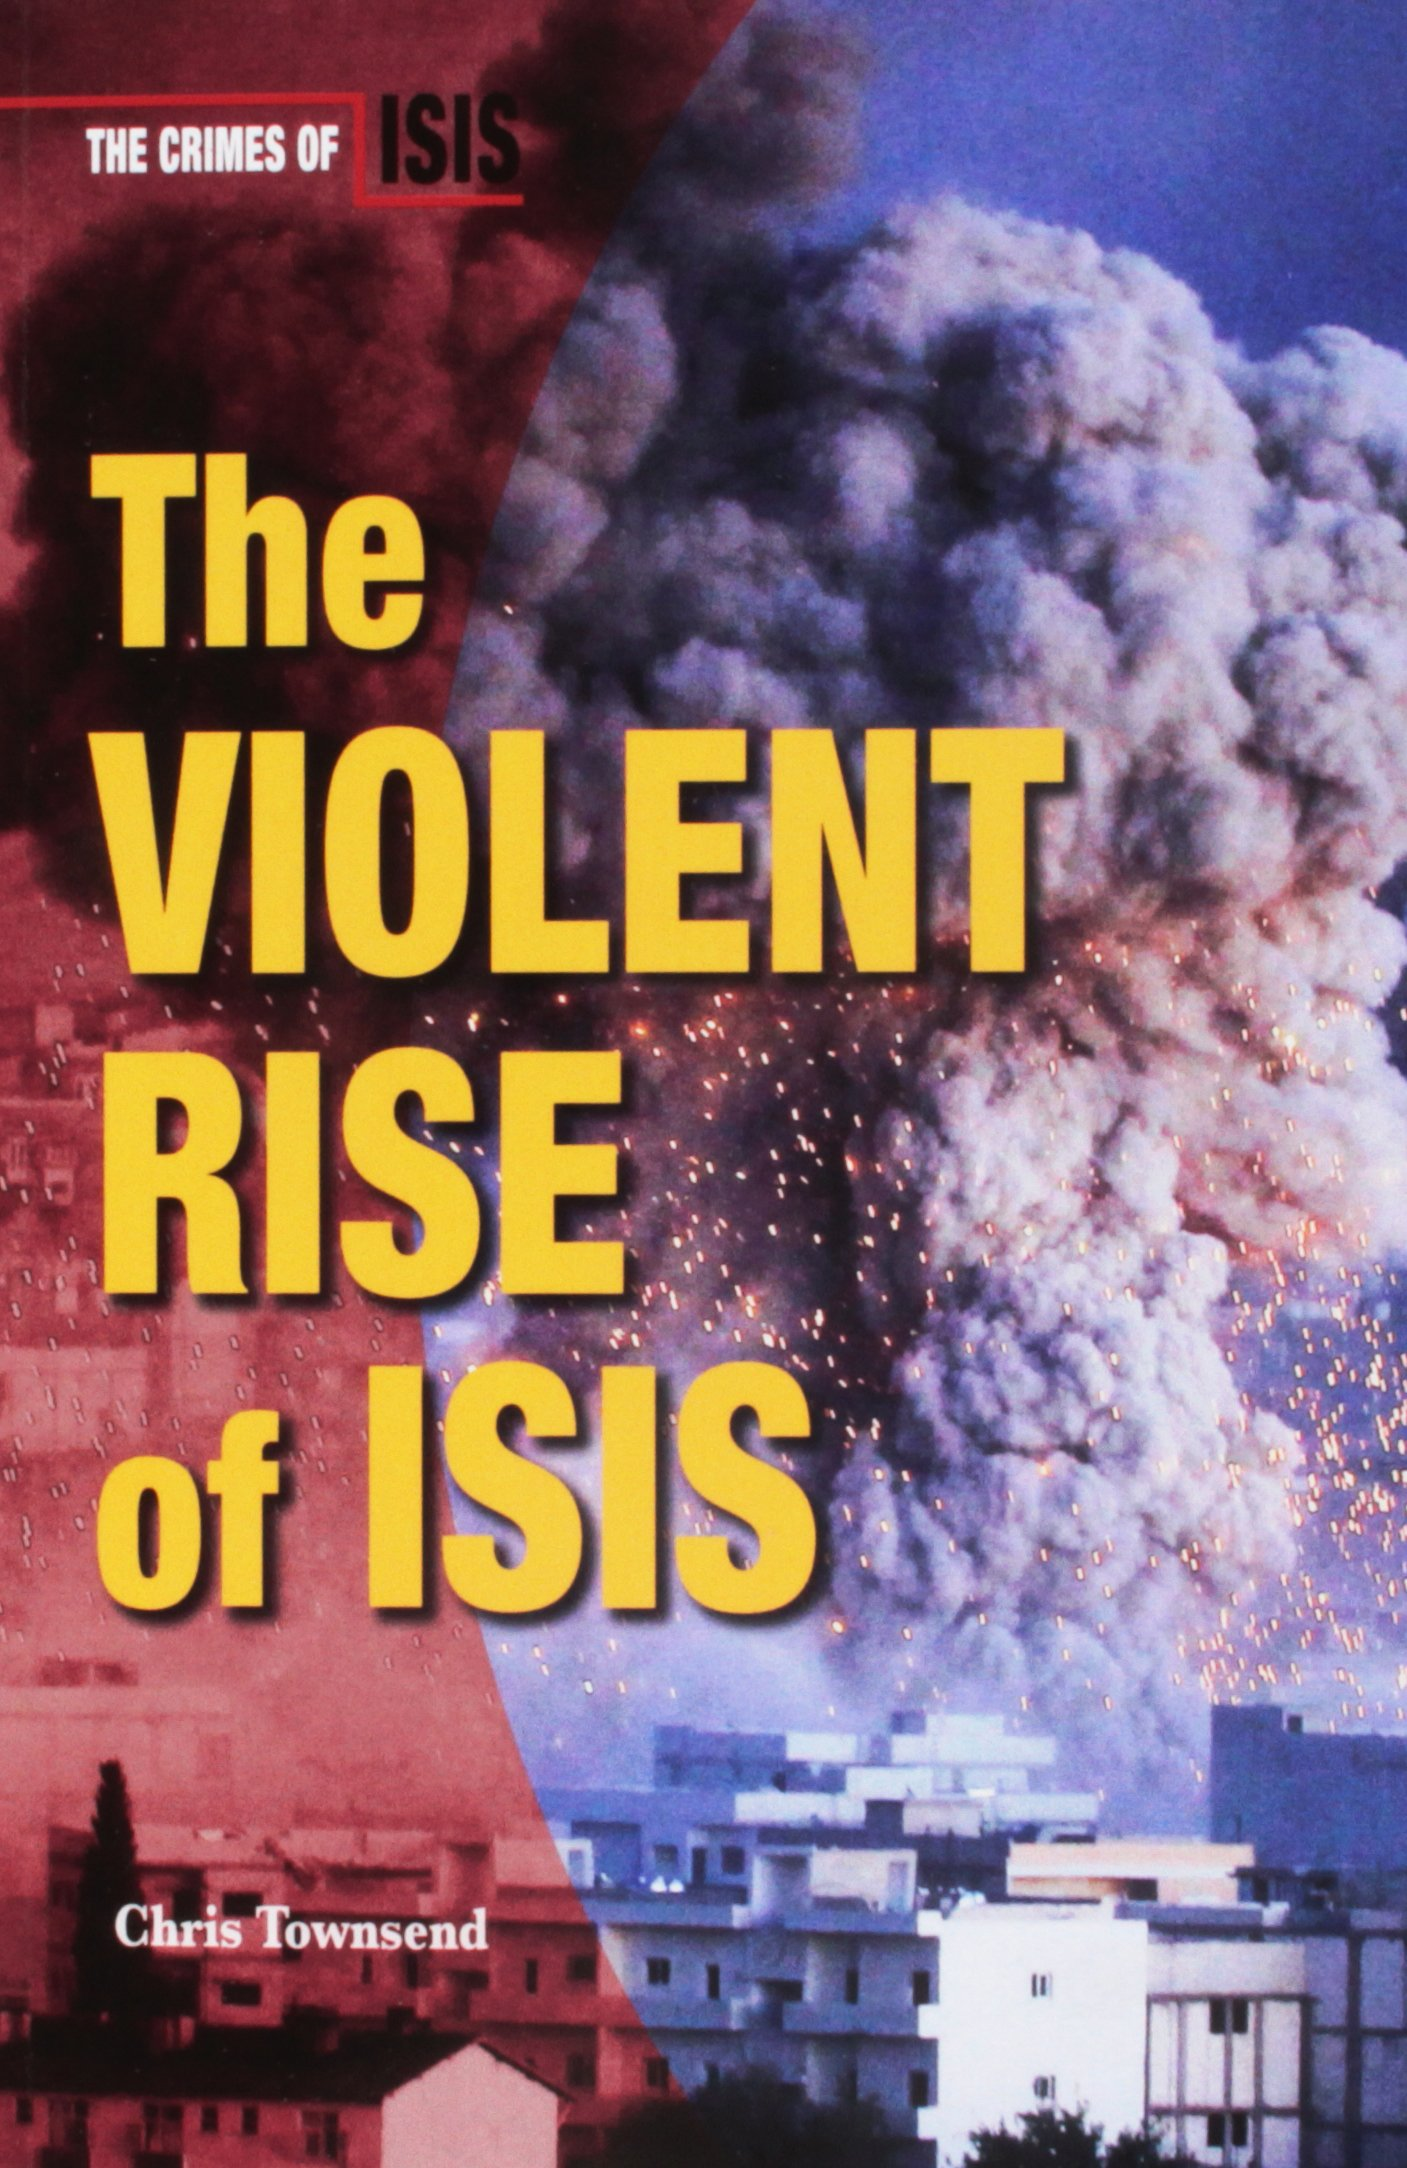 Download The Violent Rise of ISIS (Crimes of ISIS) PDF